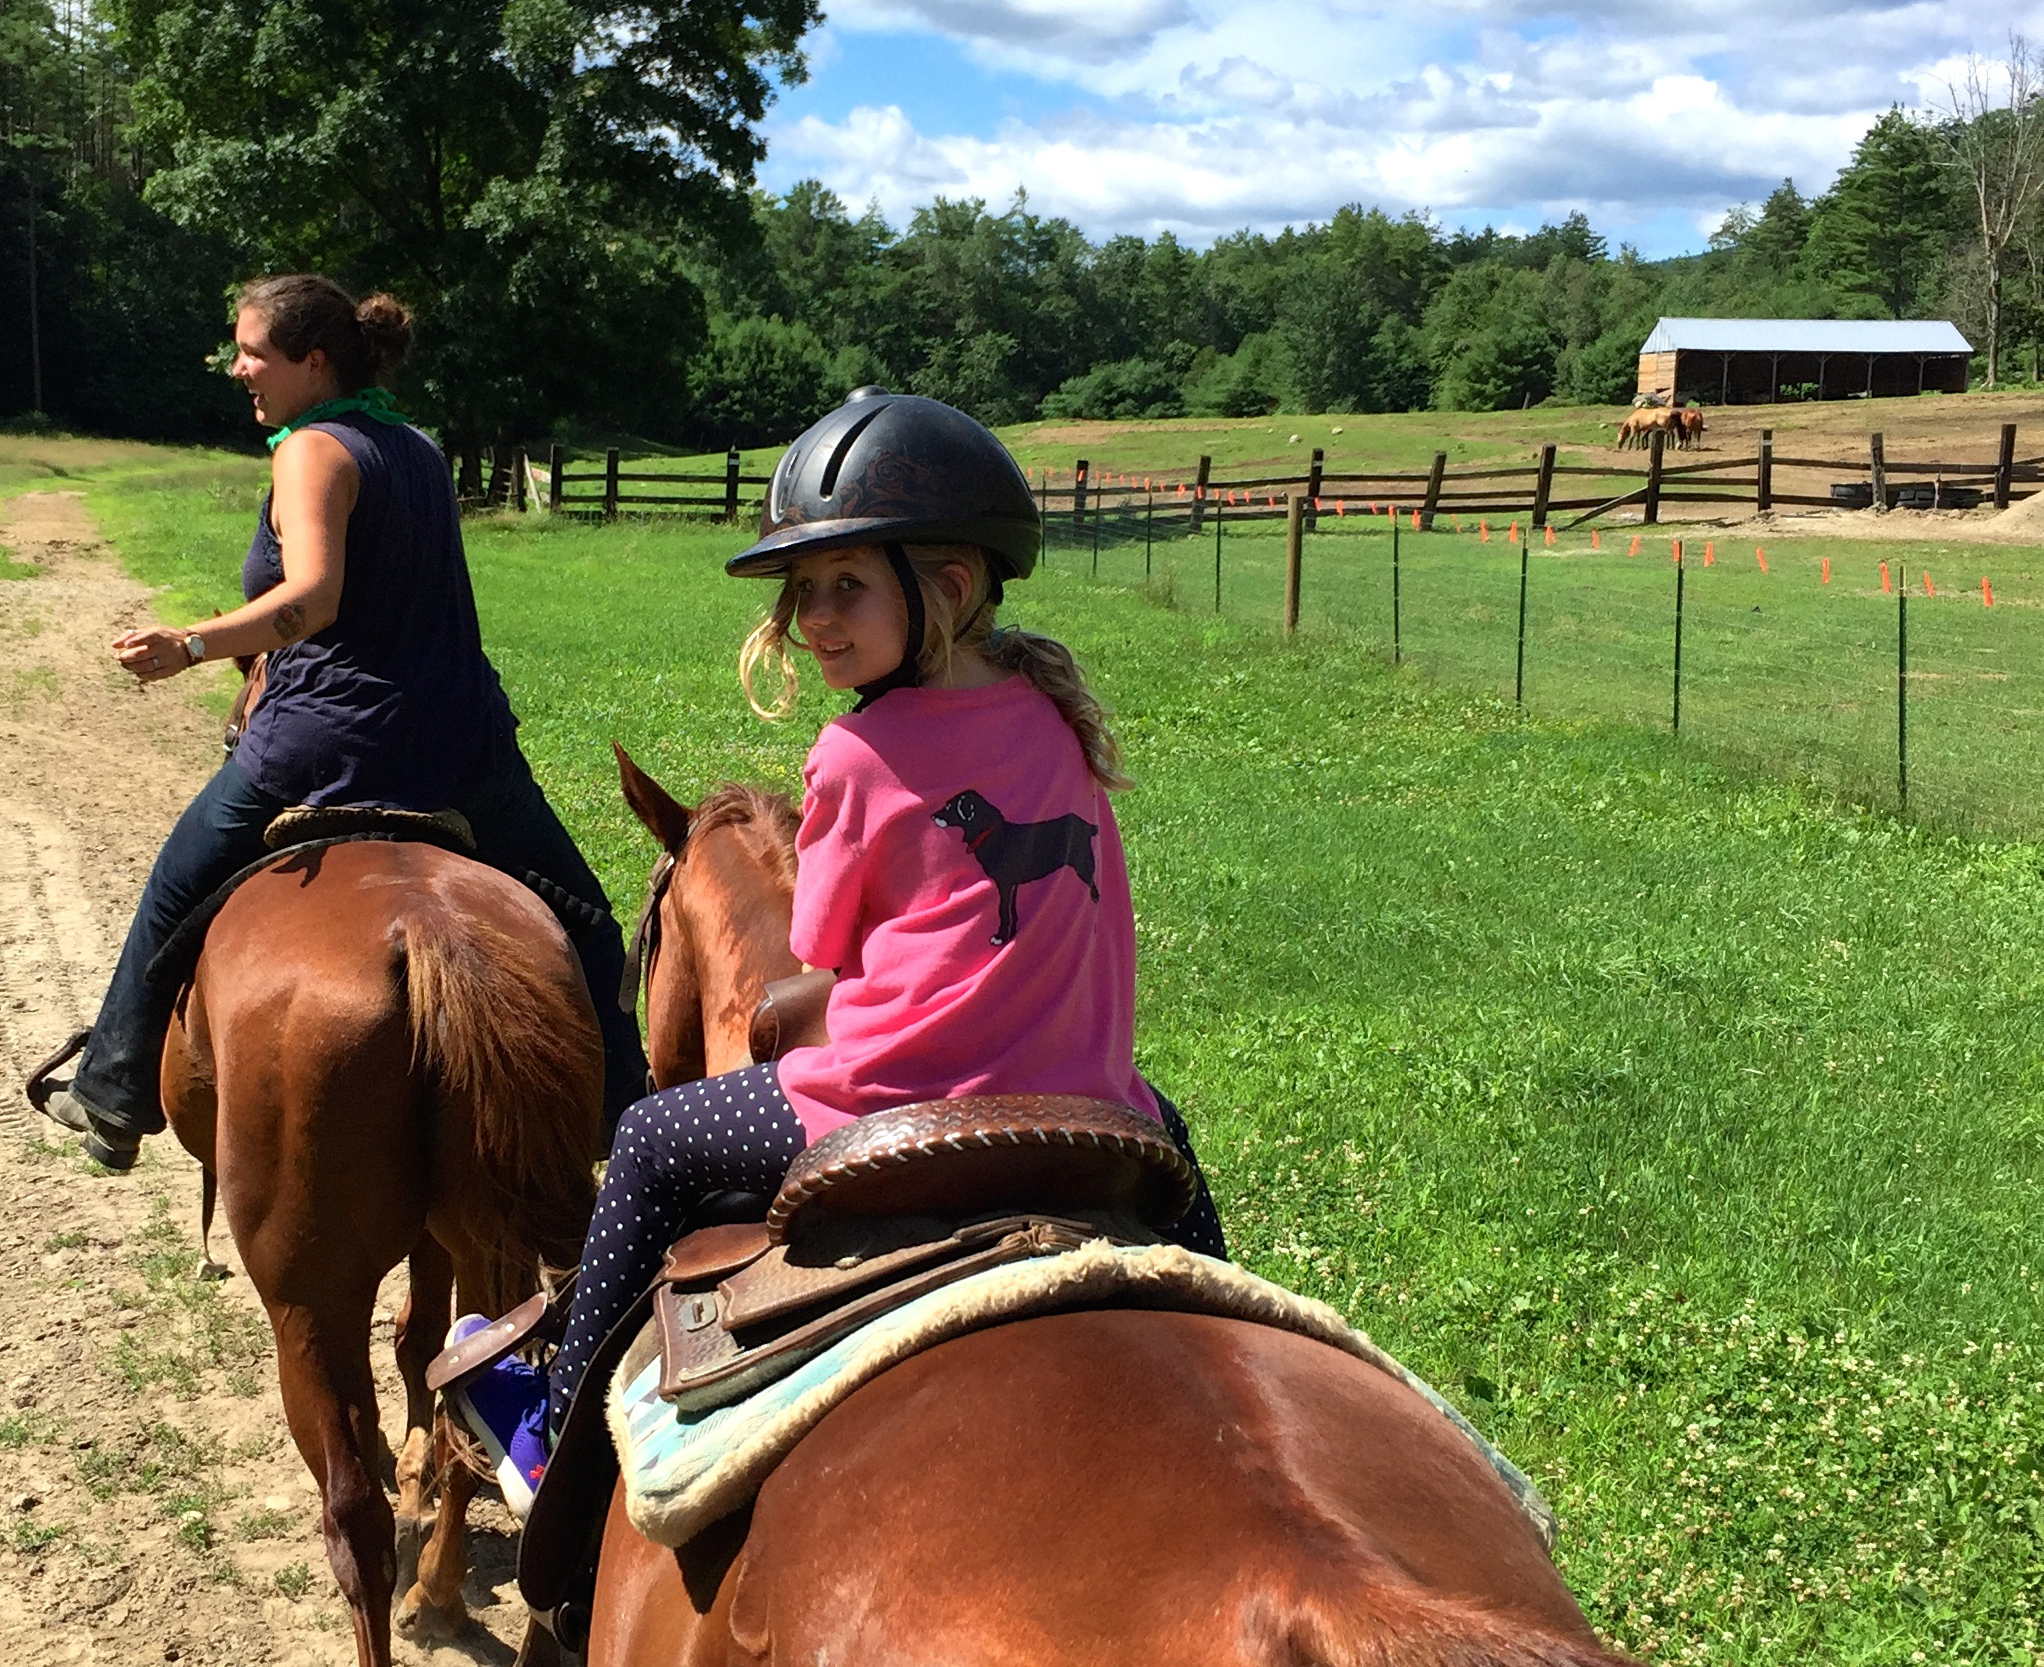 Staycation Idea: 1000 Acres Ranch